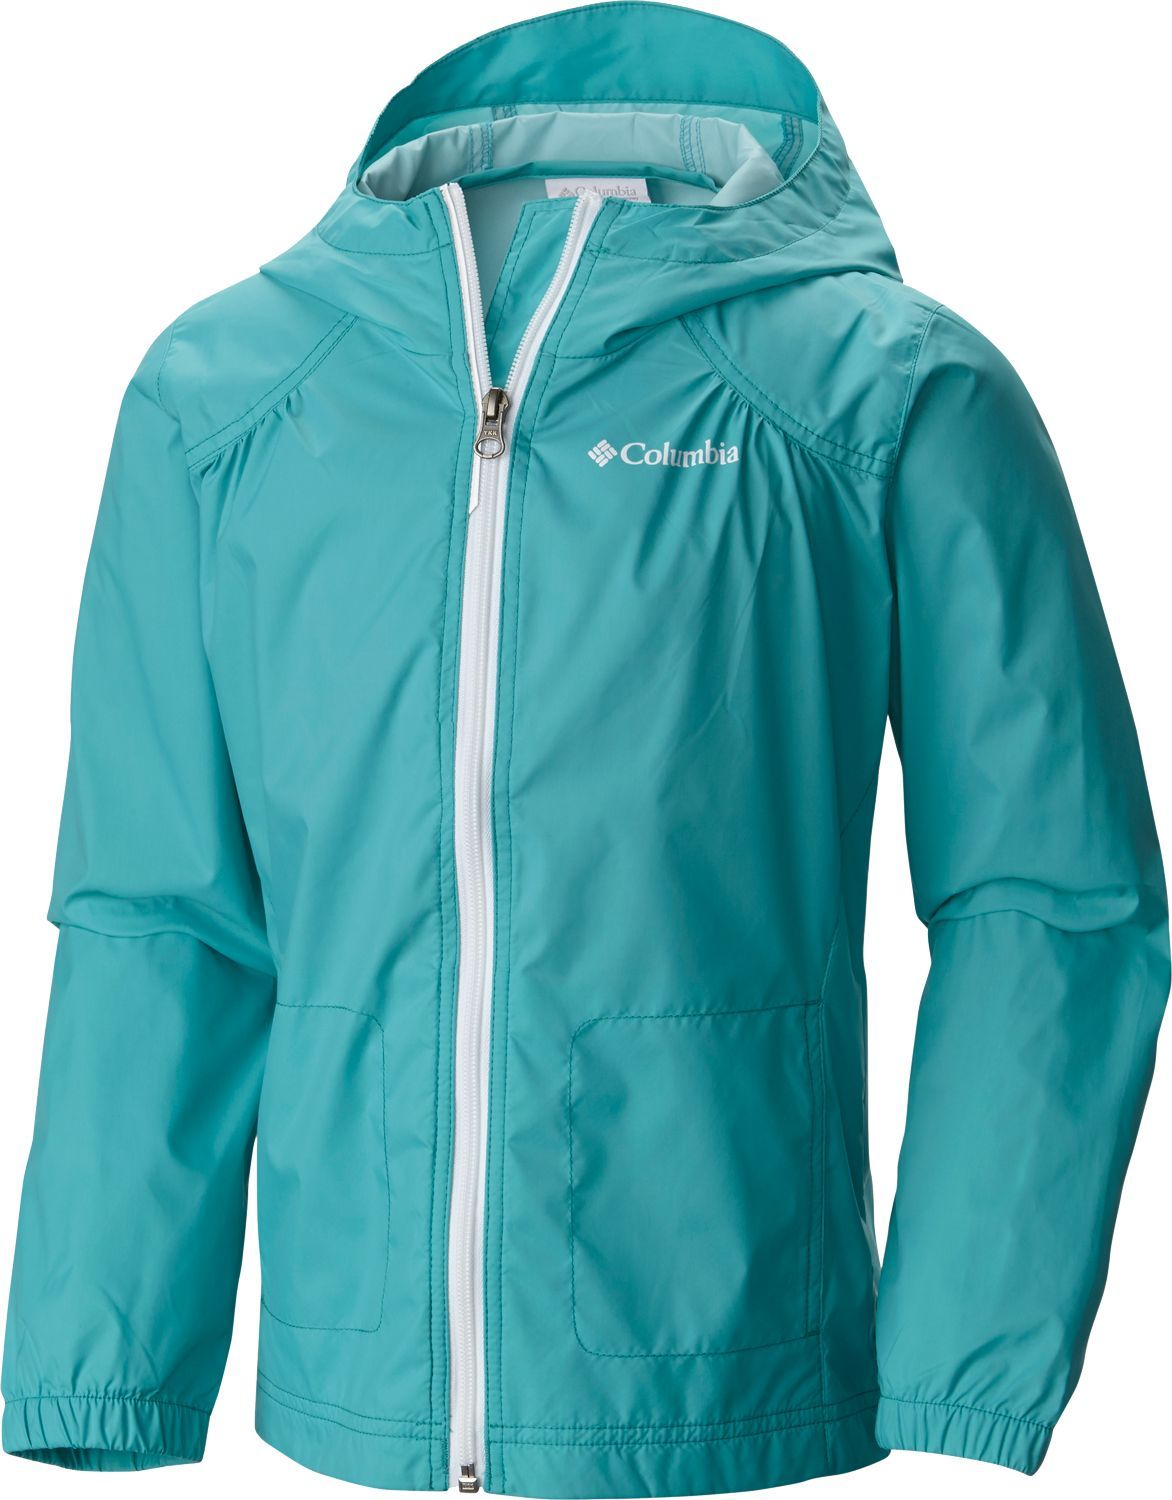 2c47d7905 Columbia Toddler Girls' Switchback Rain Jacket | Products | Columbia ...